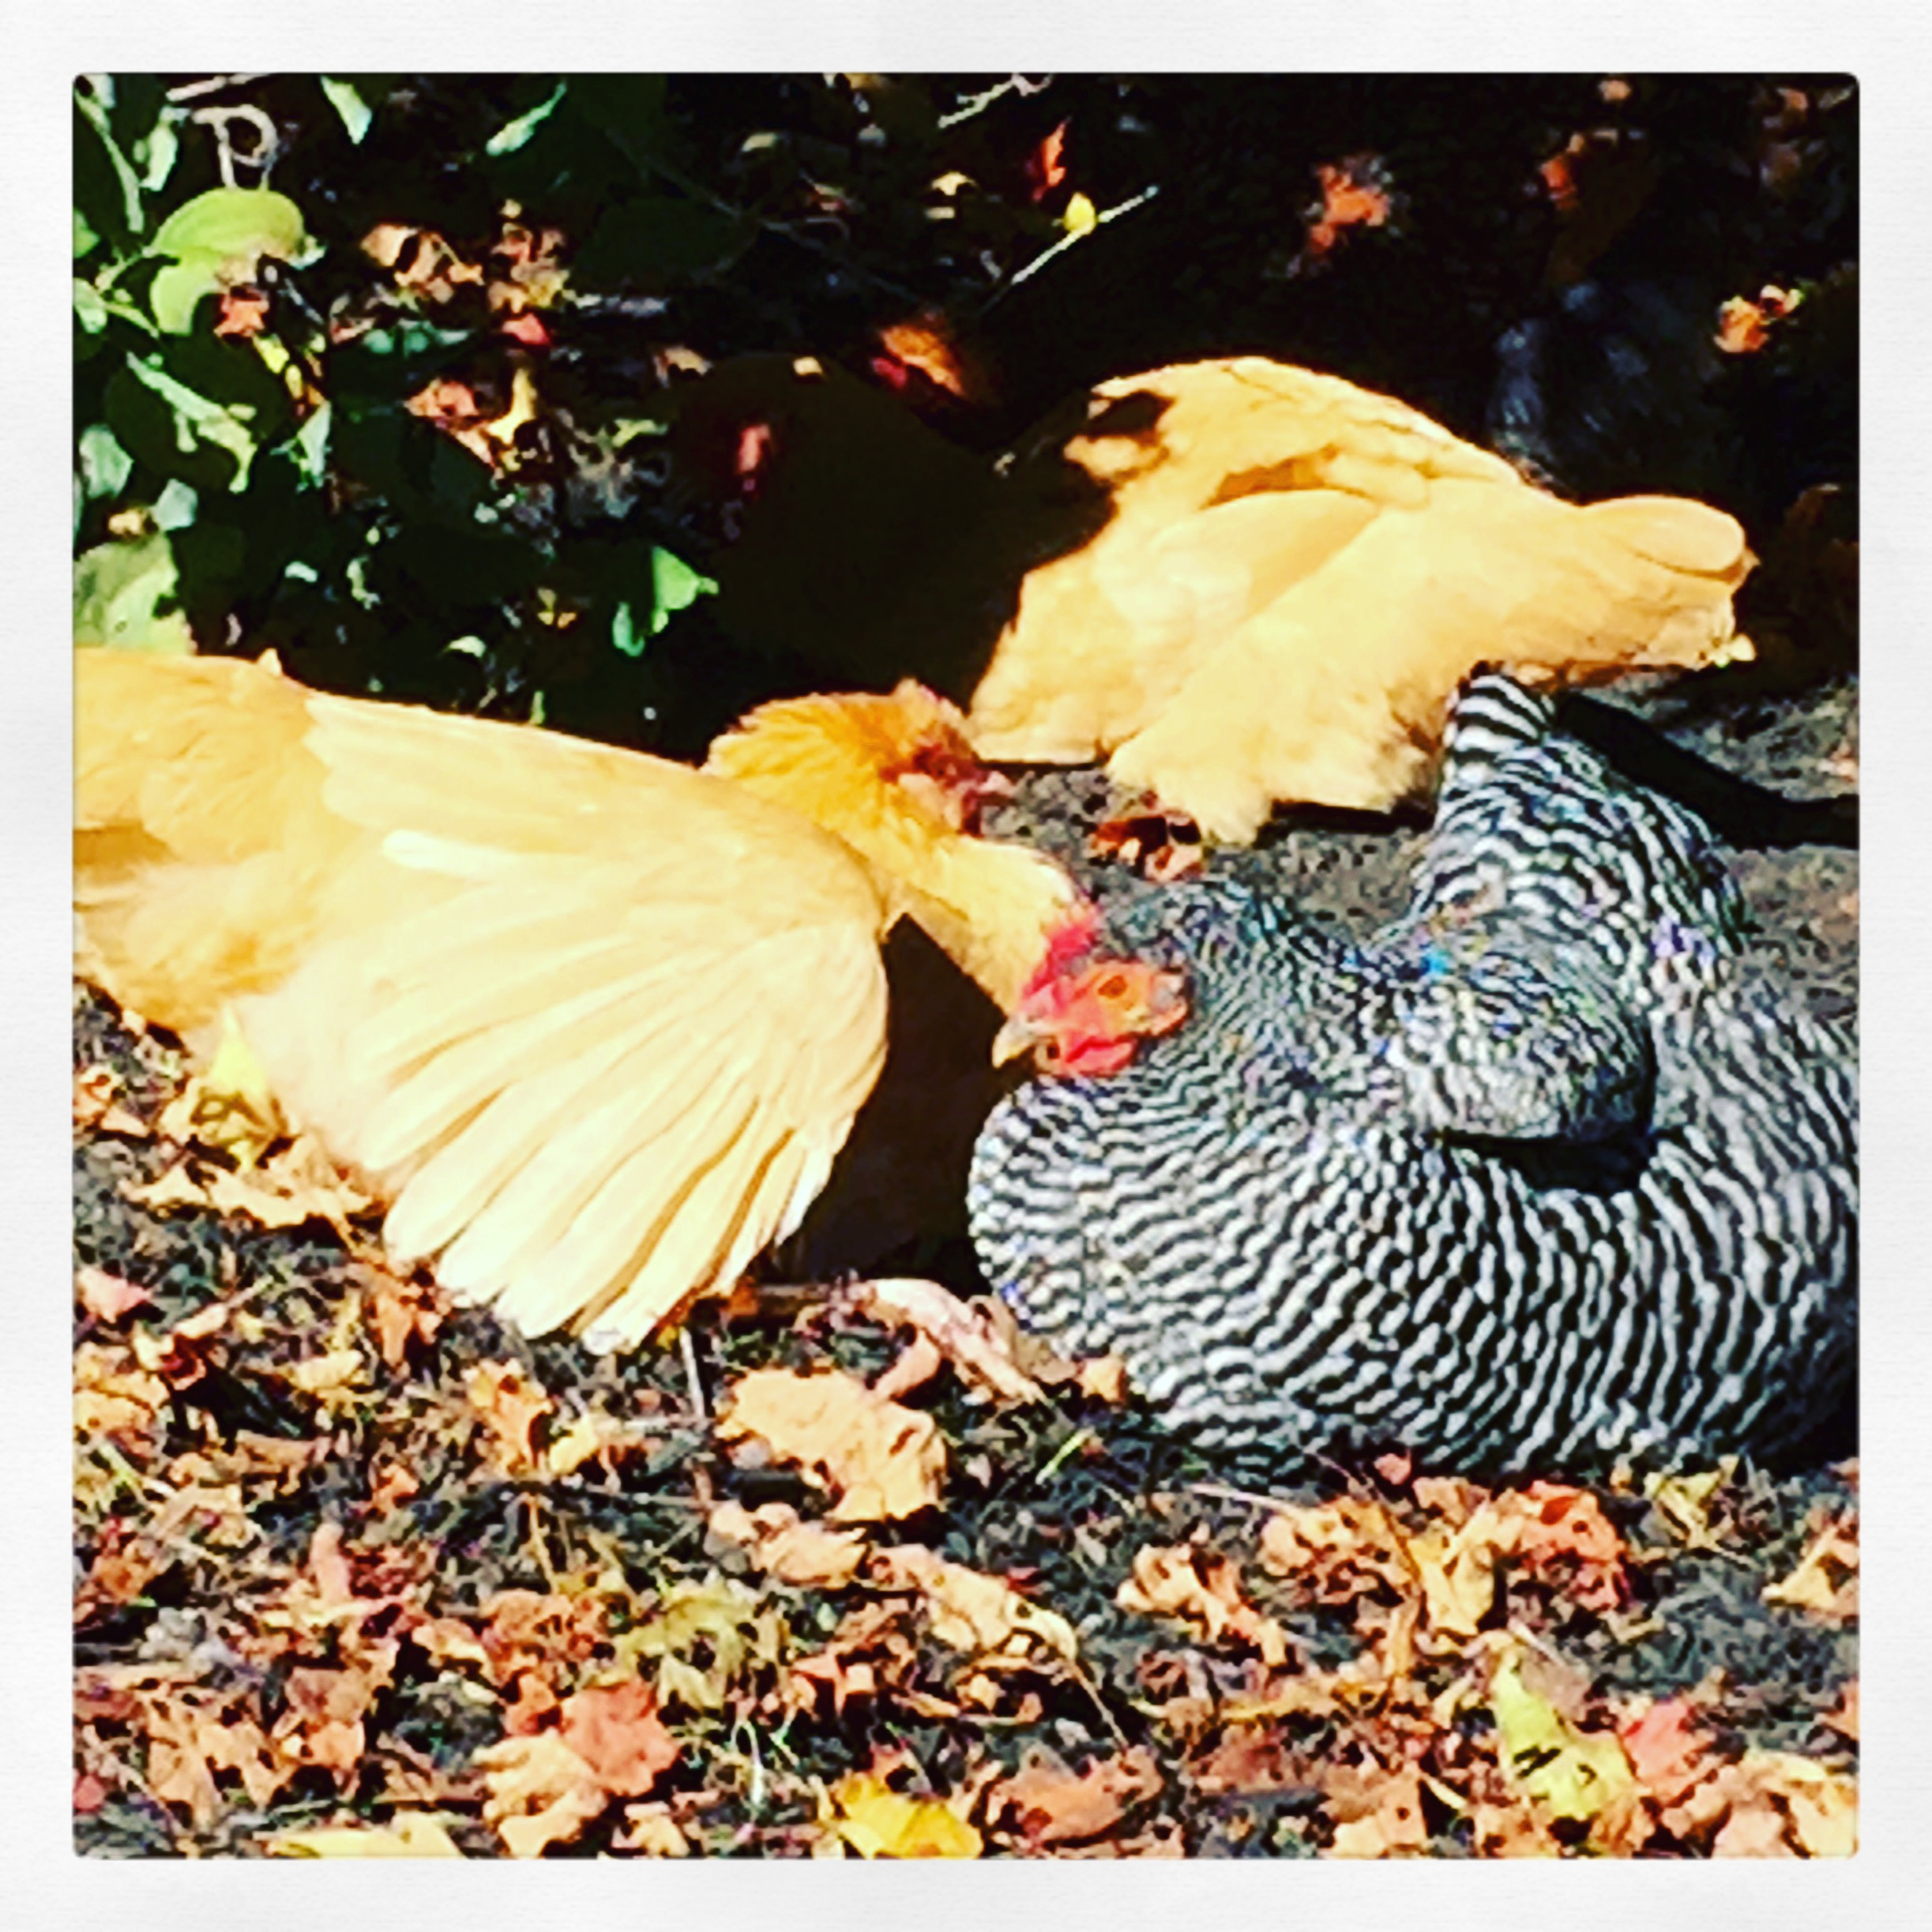 A warm day= happy chooks